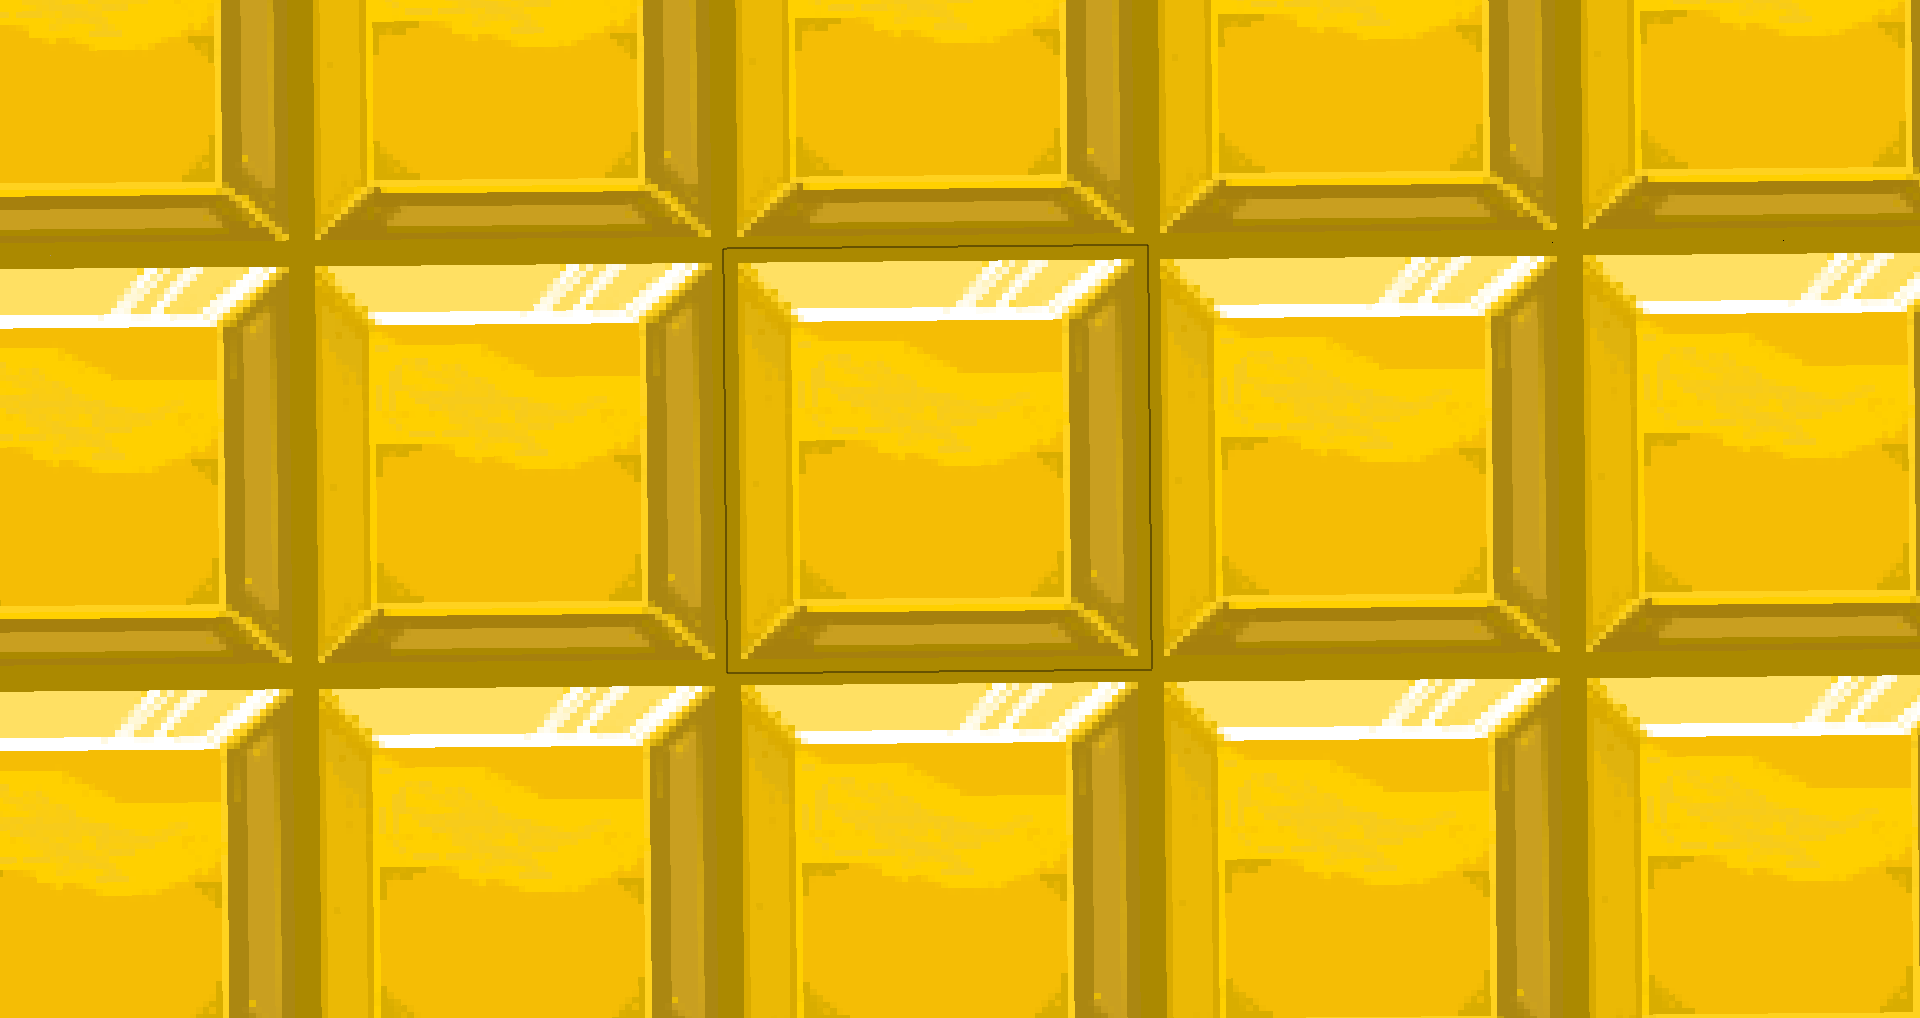 Best Wallpaper Minecraft Gold - 2011-04-08_16  Pic_611359.png